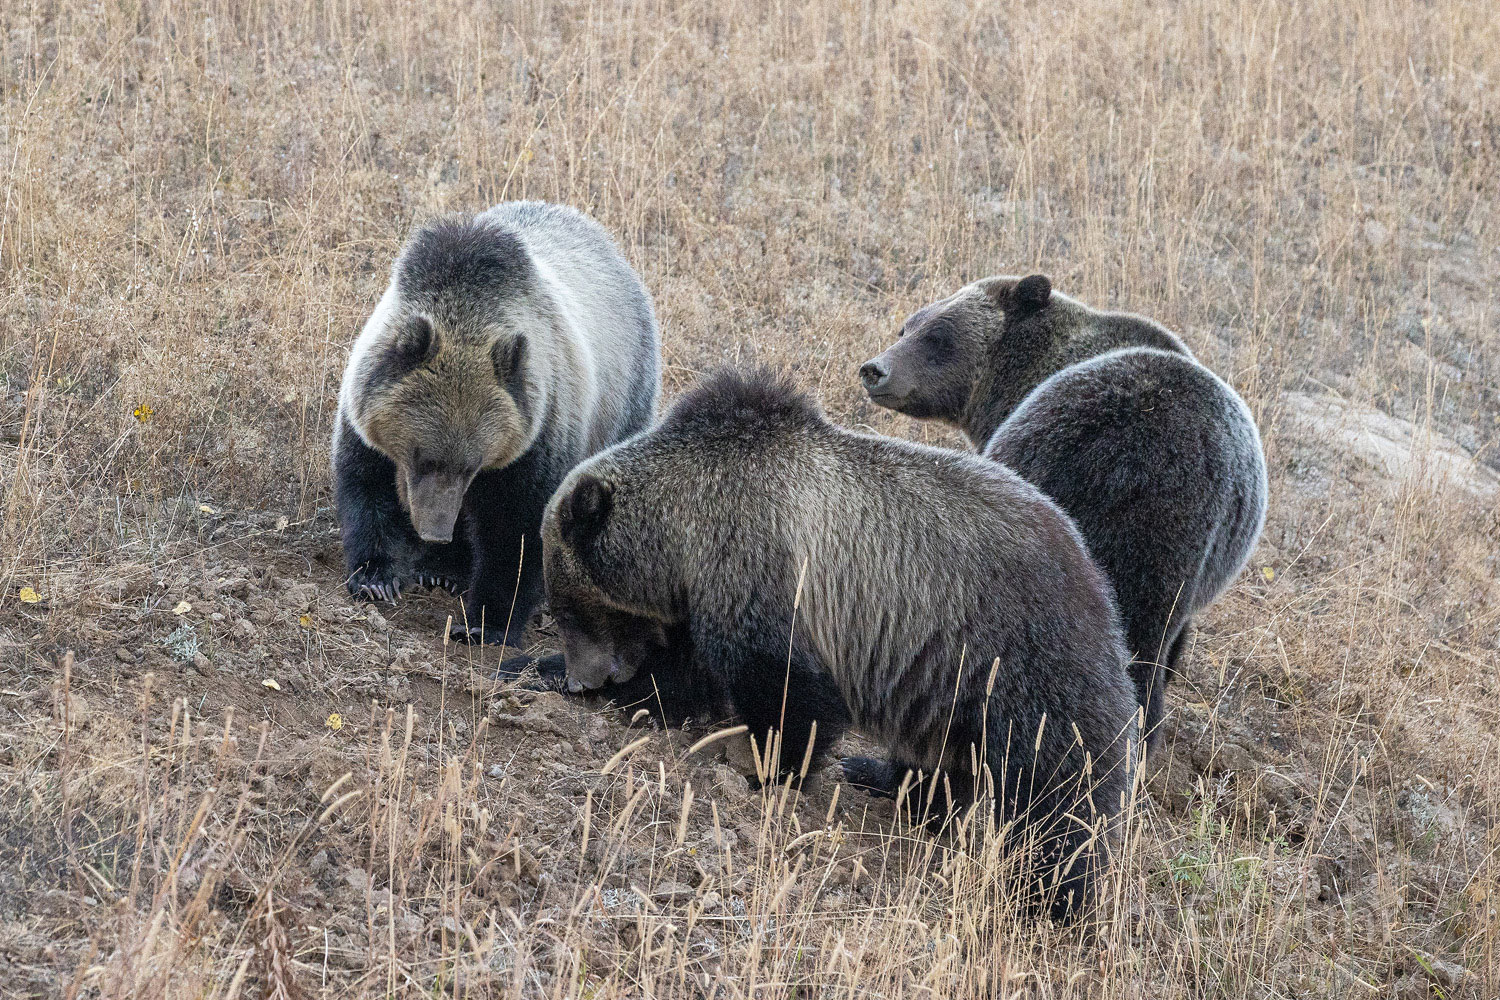 Grizzly 610 and her two large cubs, now more than two years old, root for grubs, ants and yarrow roots along Pacific Creek road...